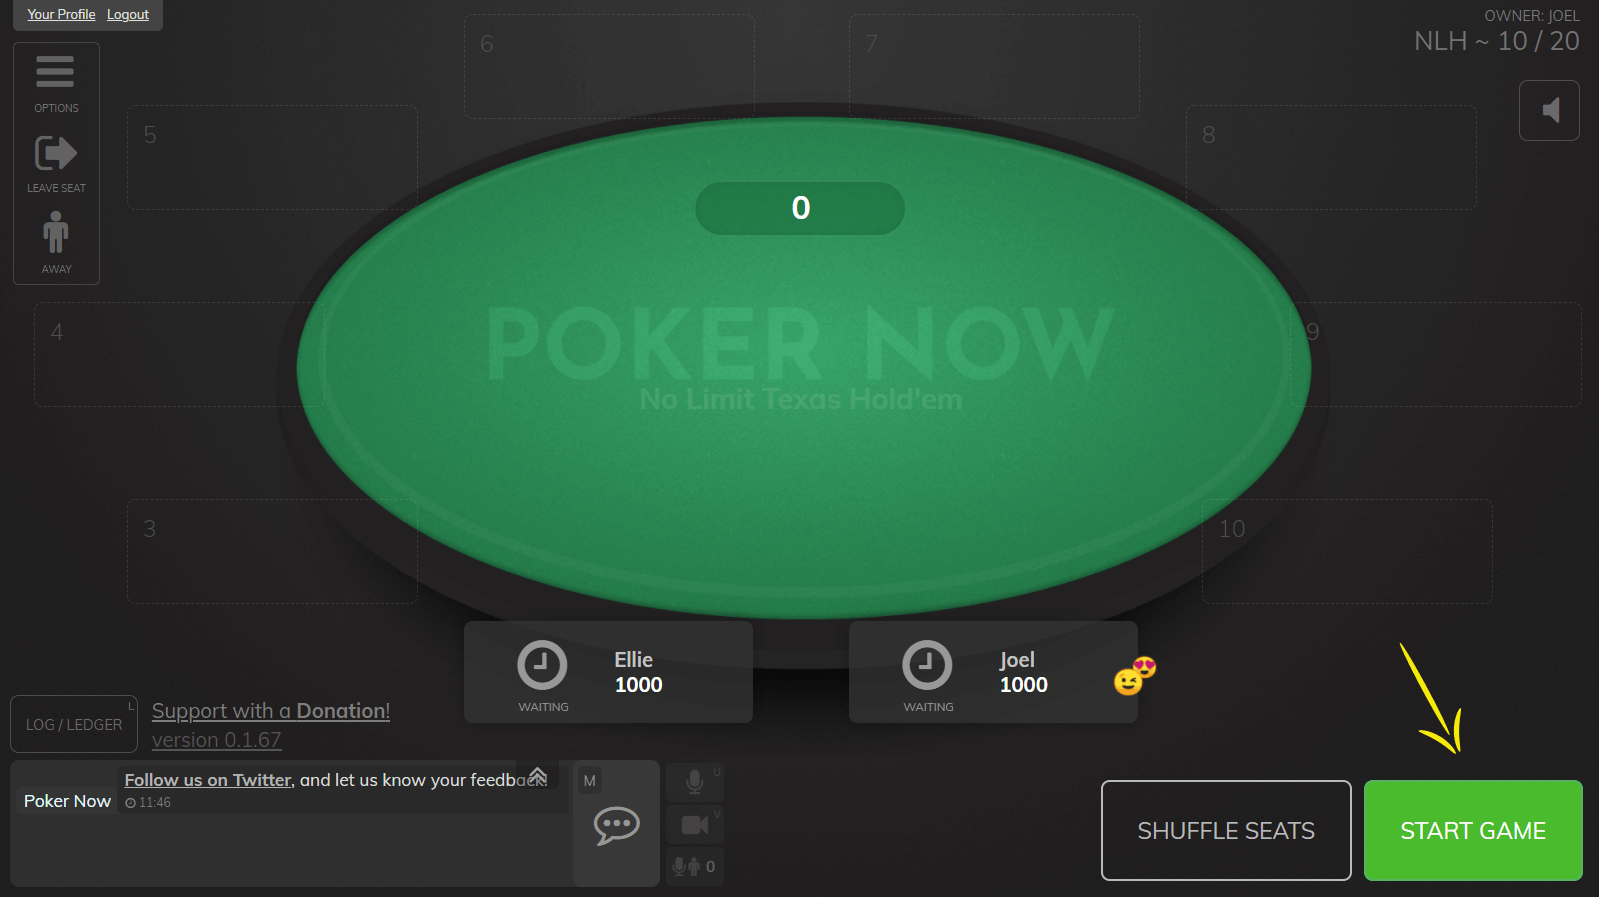 Starting the game on Poker Now